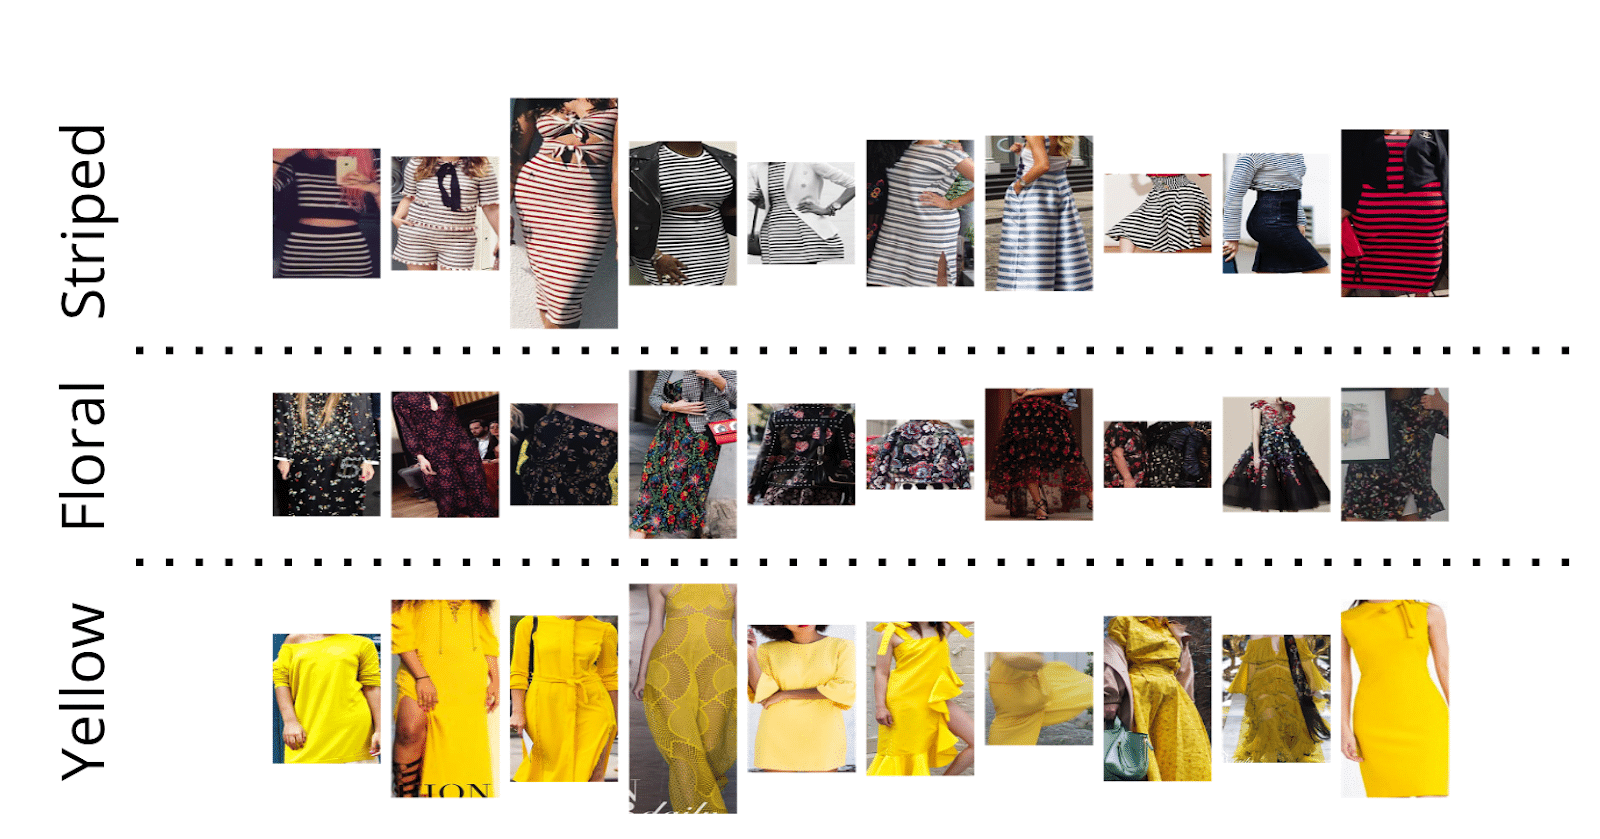 Clustering example in fashion pictures